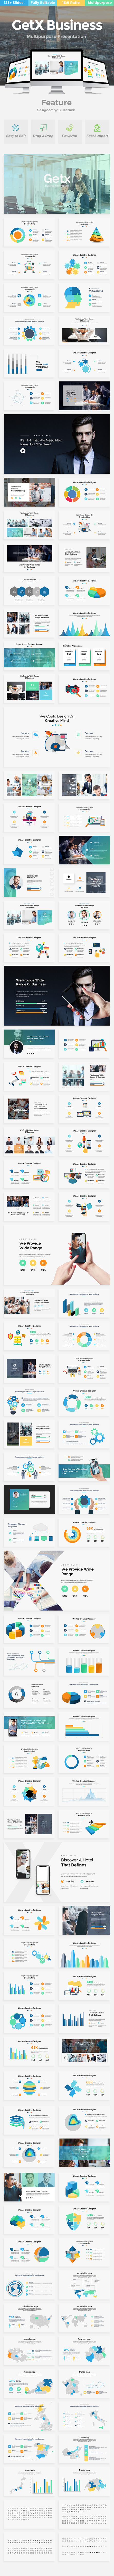 Getx Business Google Slide Template - Google Slides Presentation Templates